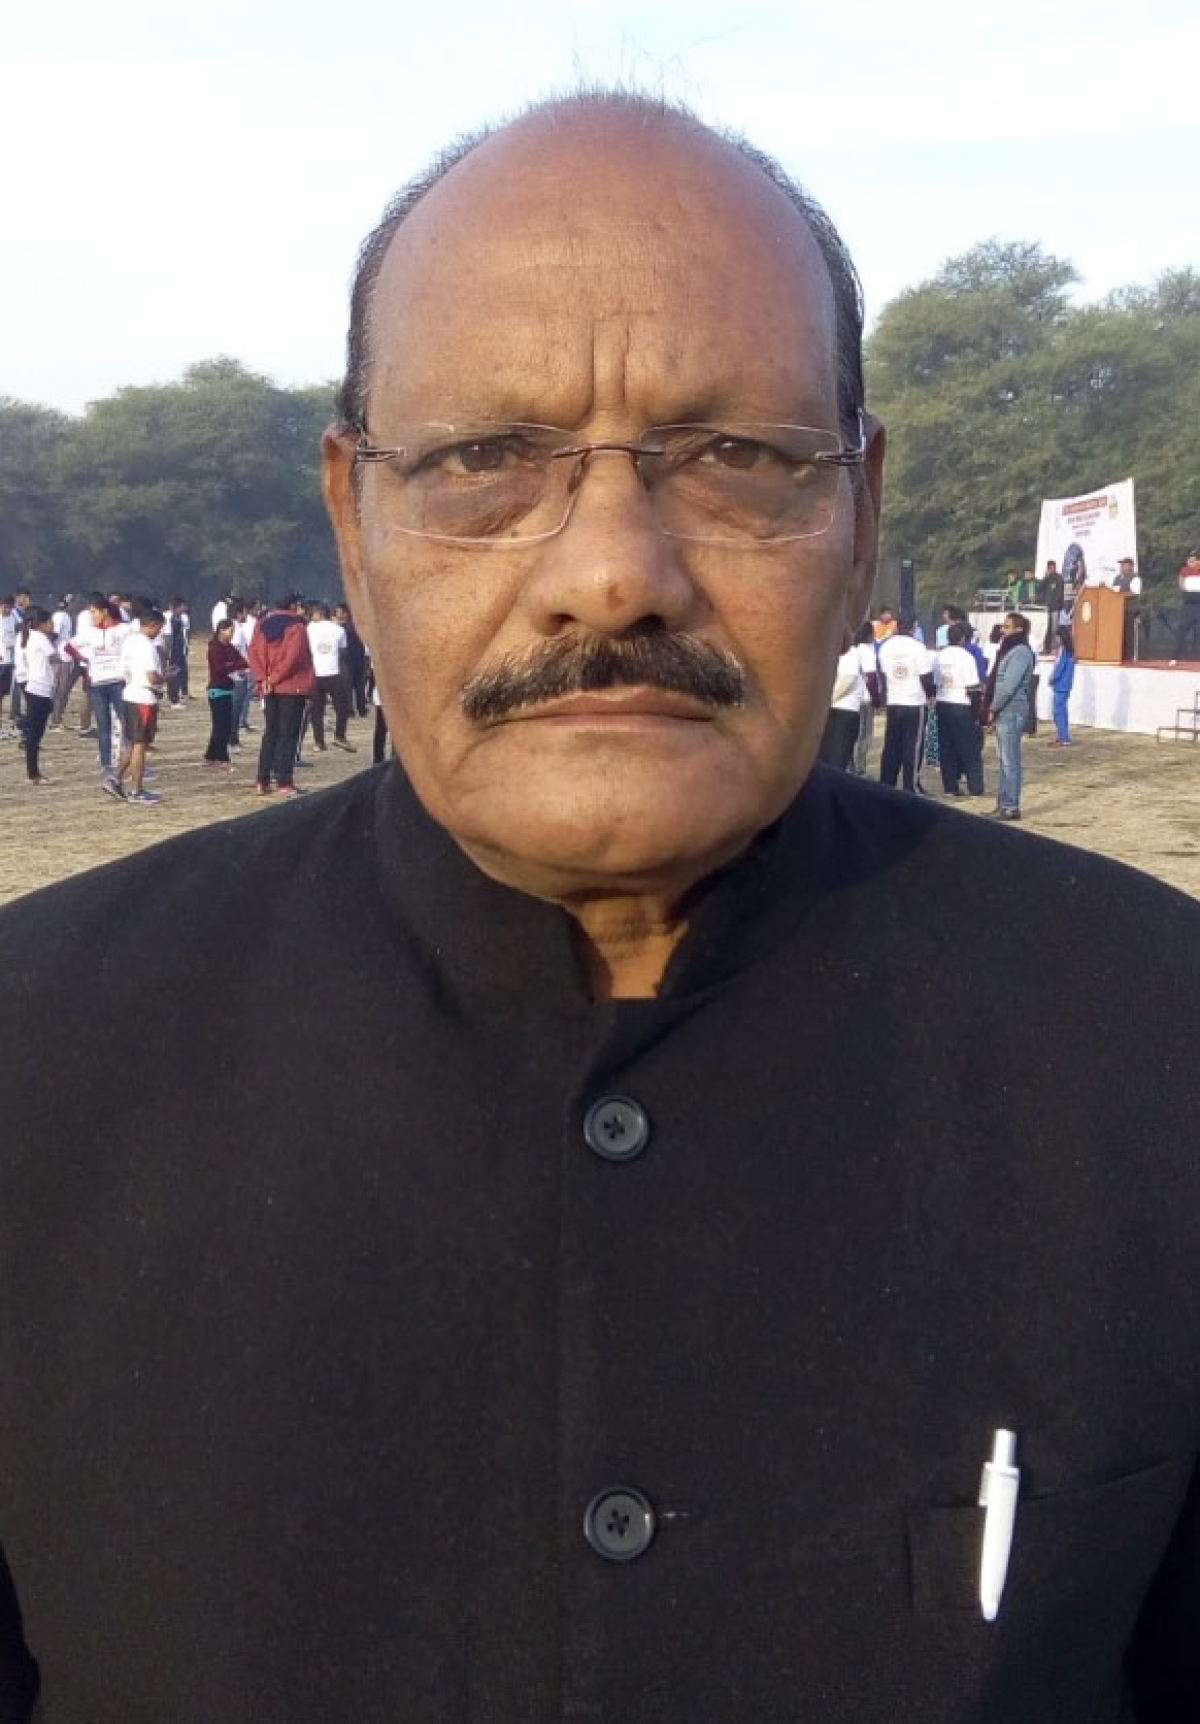 Ujjain: Veteran sportsman to be feted on Republic Day